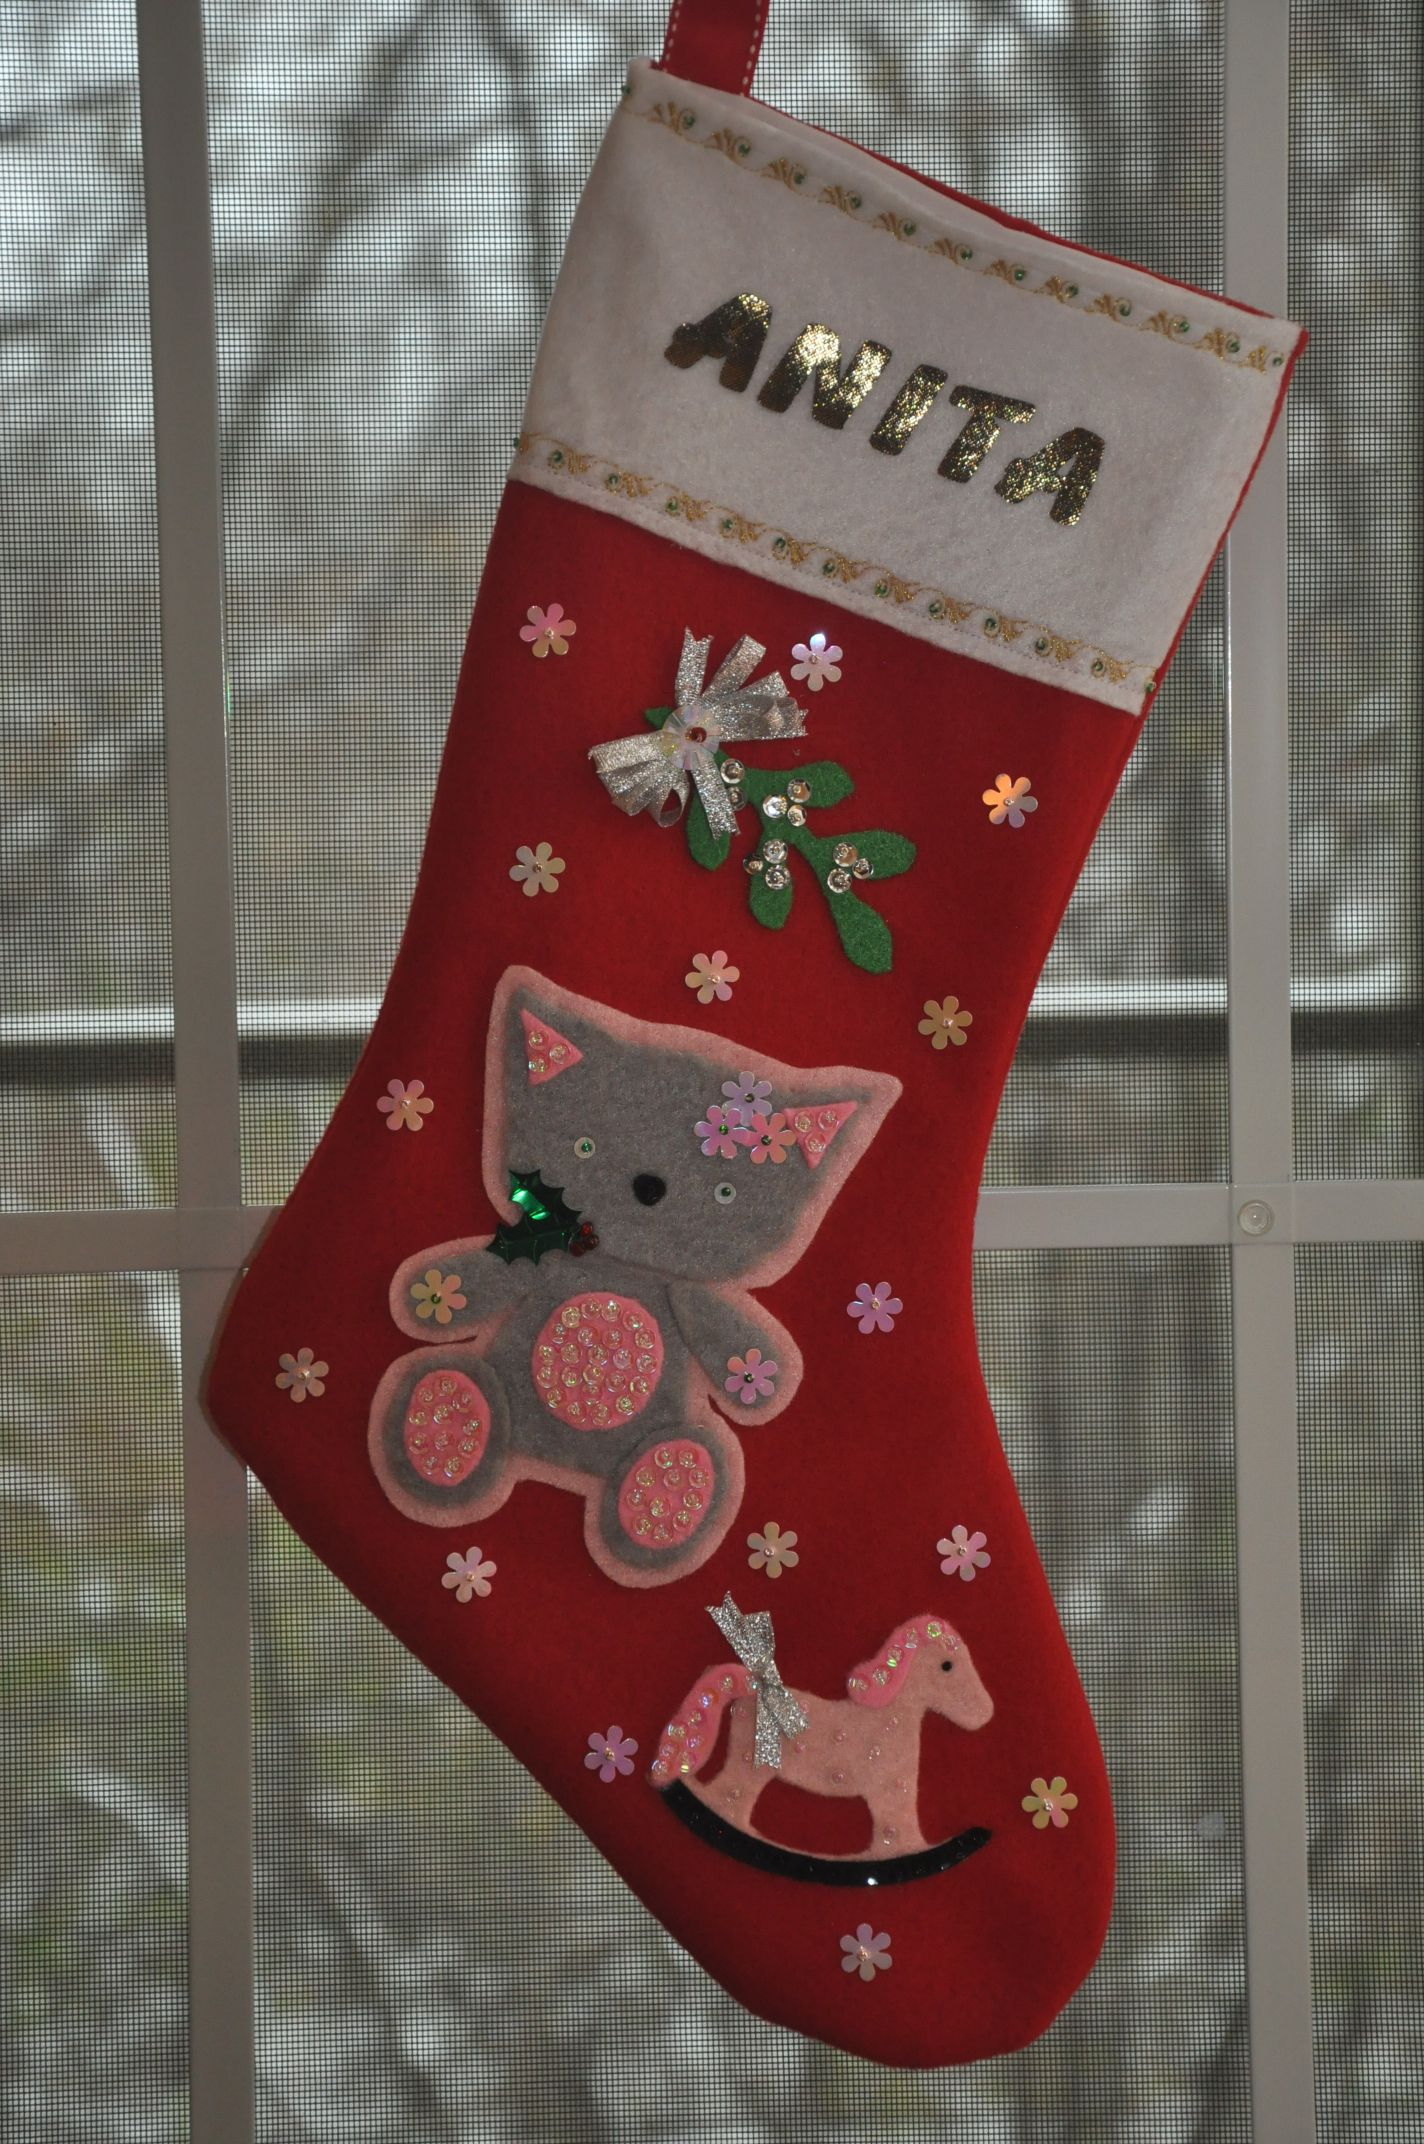 Startling Rocking Horse Grey Pink Cat Stocking Mistletoe Grey Pink Cat Stocking Rocking Horse Cat Stocking Her Cat Stocking Filled Mistletoe